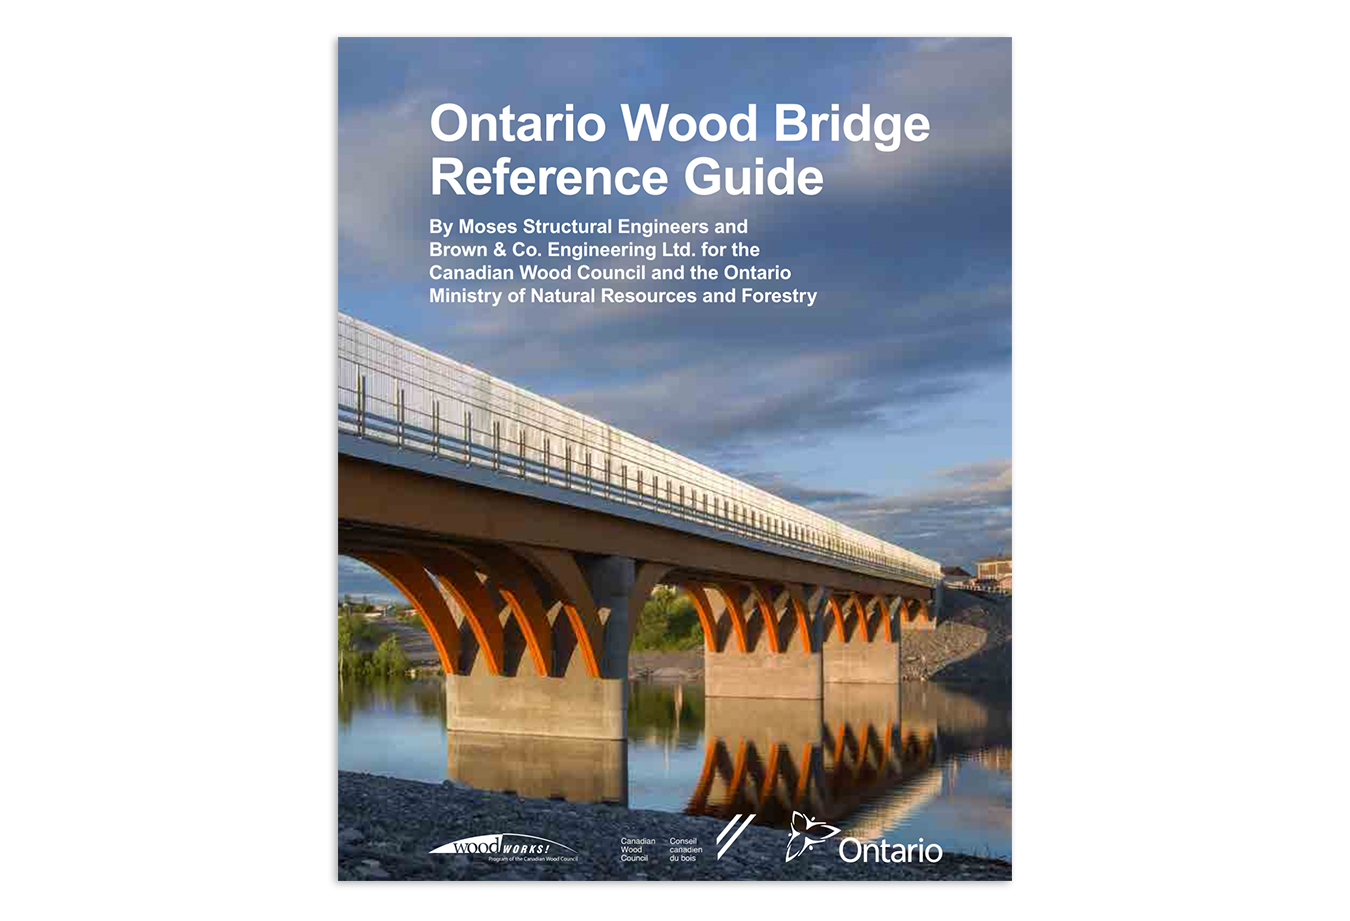 Now Available: Ontario Wood Bridge Reference Guide! - Moses ... on long bridge, tree bridge, simple bridge, concord, ontario, farm bridge, popsicle stick bridge, dina pugliese, king city, cantilever bridge, swing bridge, elizabeth arden, stone bridge, truck going under bridge, maple, ontario, brick bridge, plank bridge, waterfall bridge, troll bridge, beam bridge, humber river,